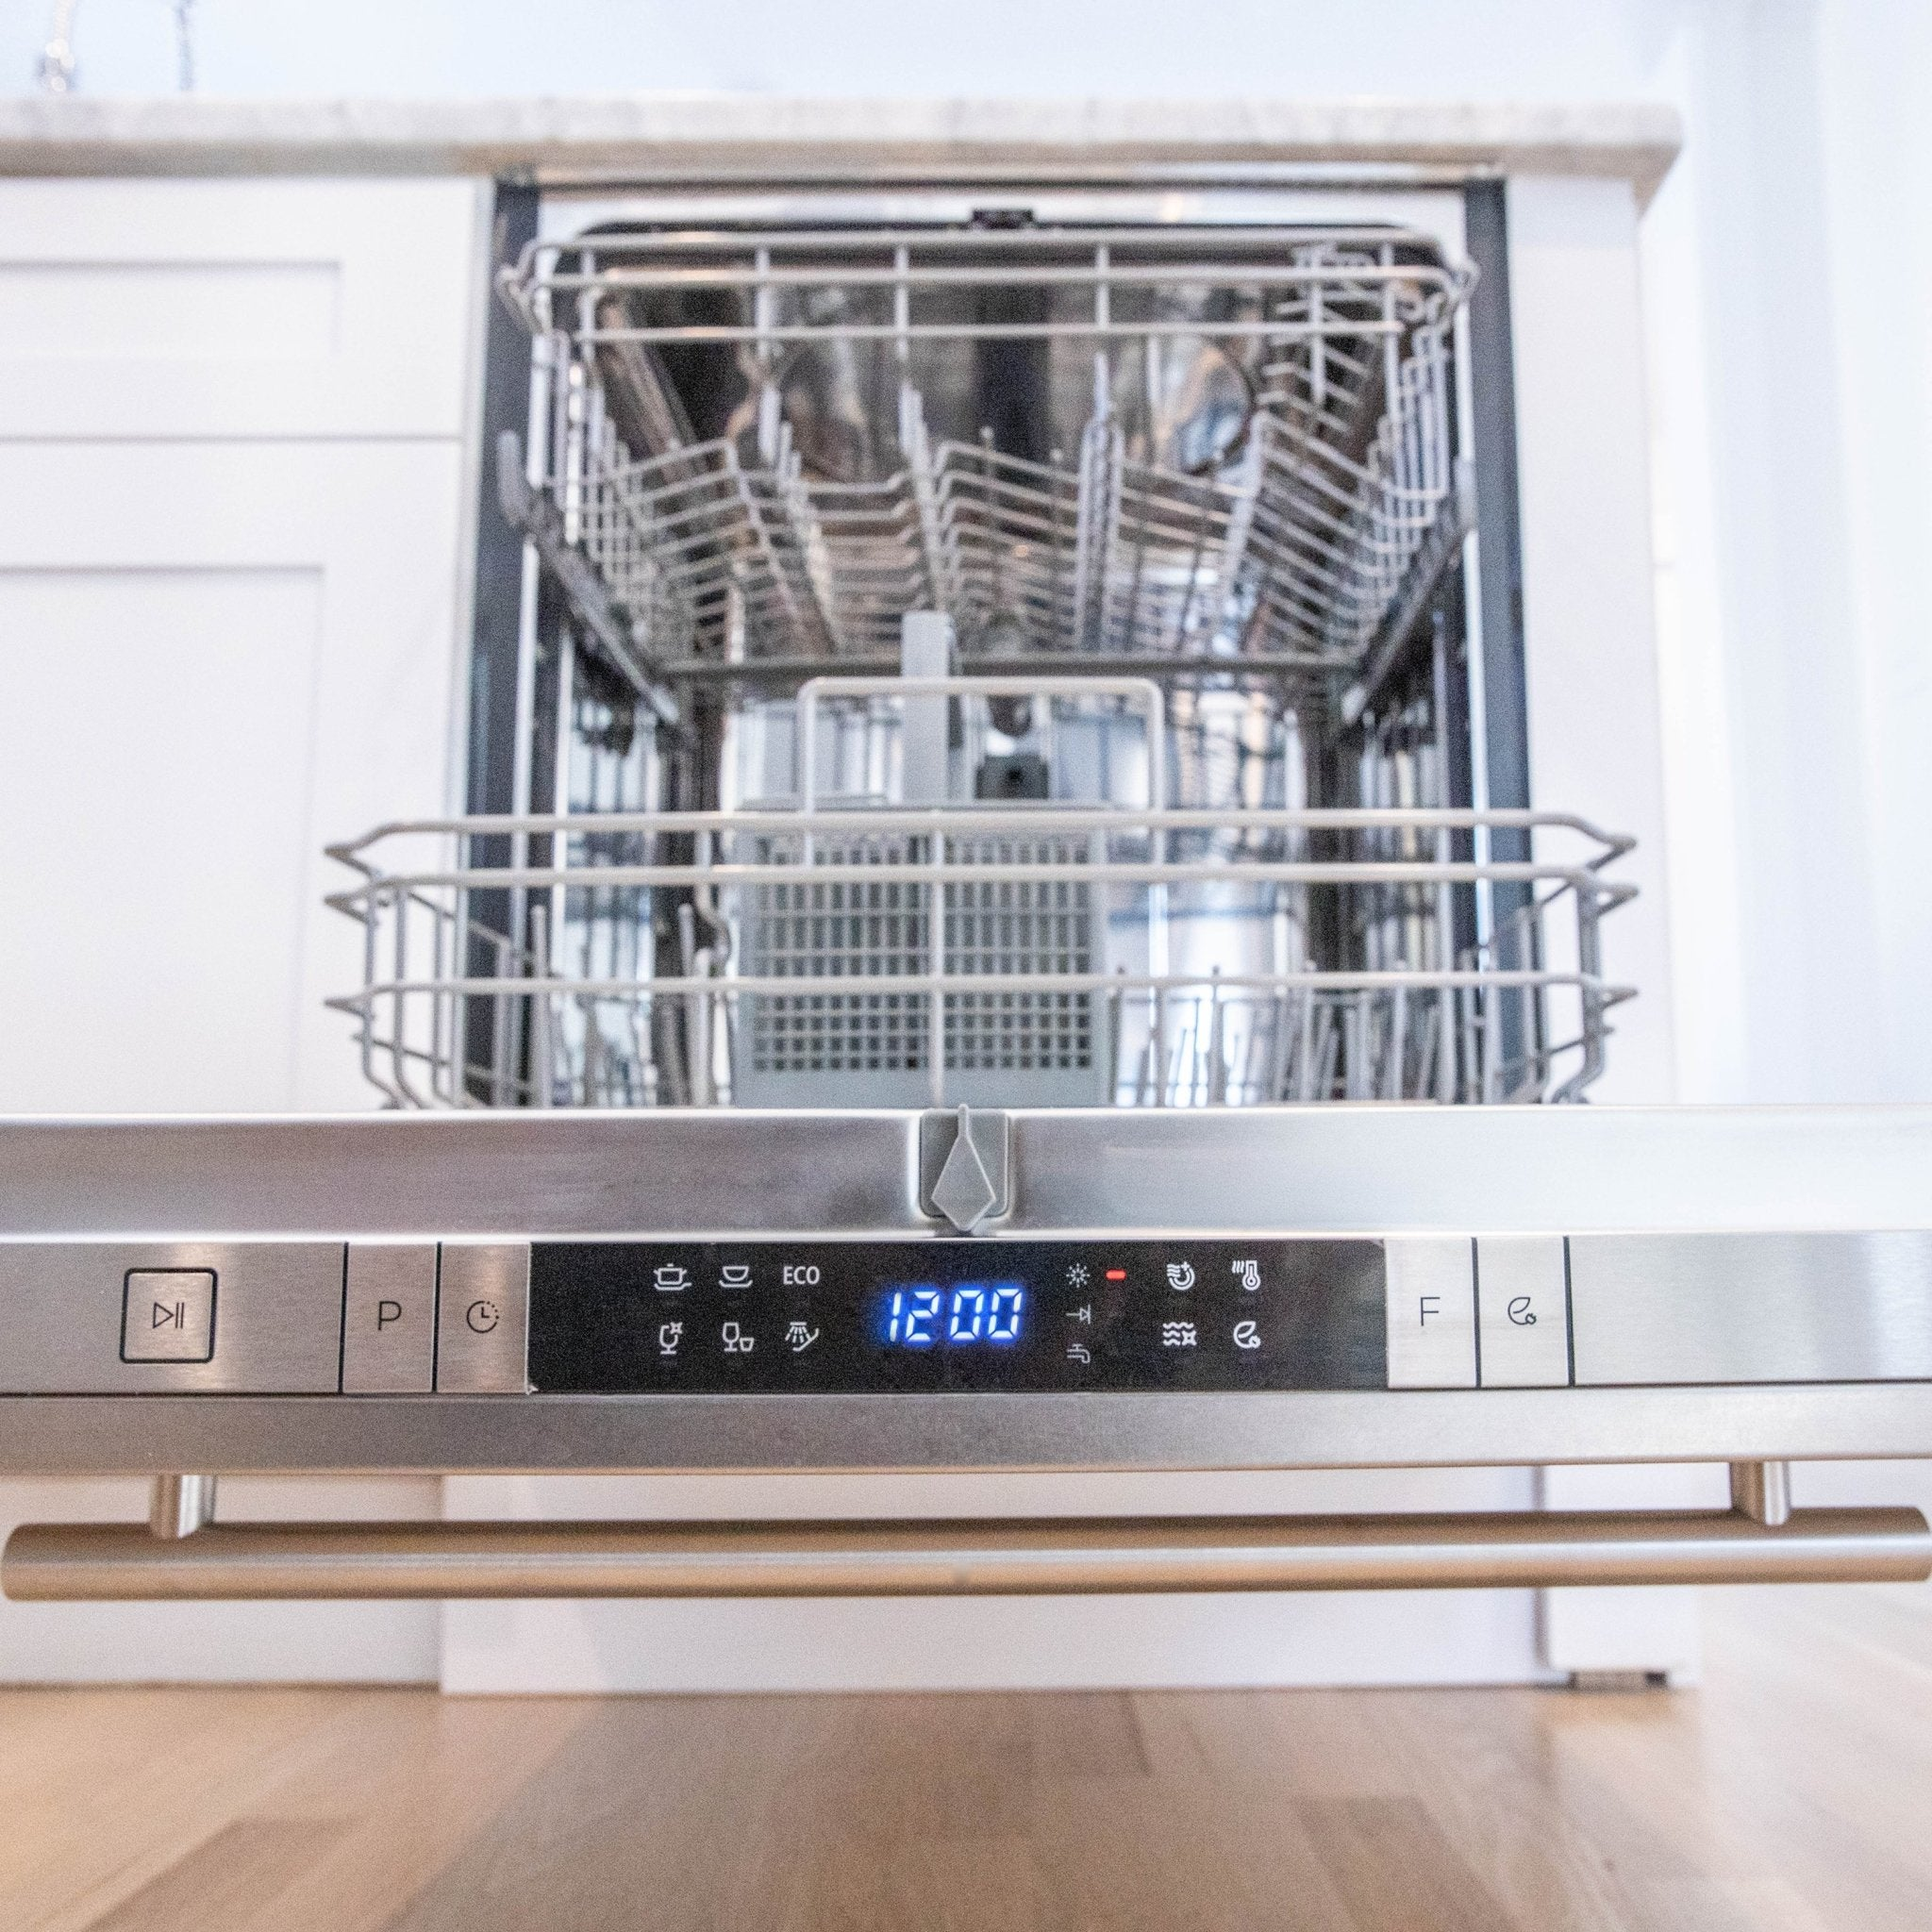 "ZLINE 24"" Top Control Dishwasher with Stainless Steel Tub and Modern Style Handle - Rustic Kitchen & Bath - Dishwashers - ZLINE Kitchen and Bath"